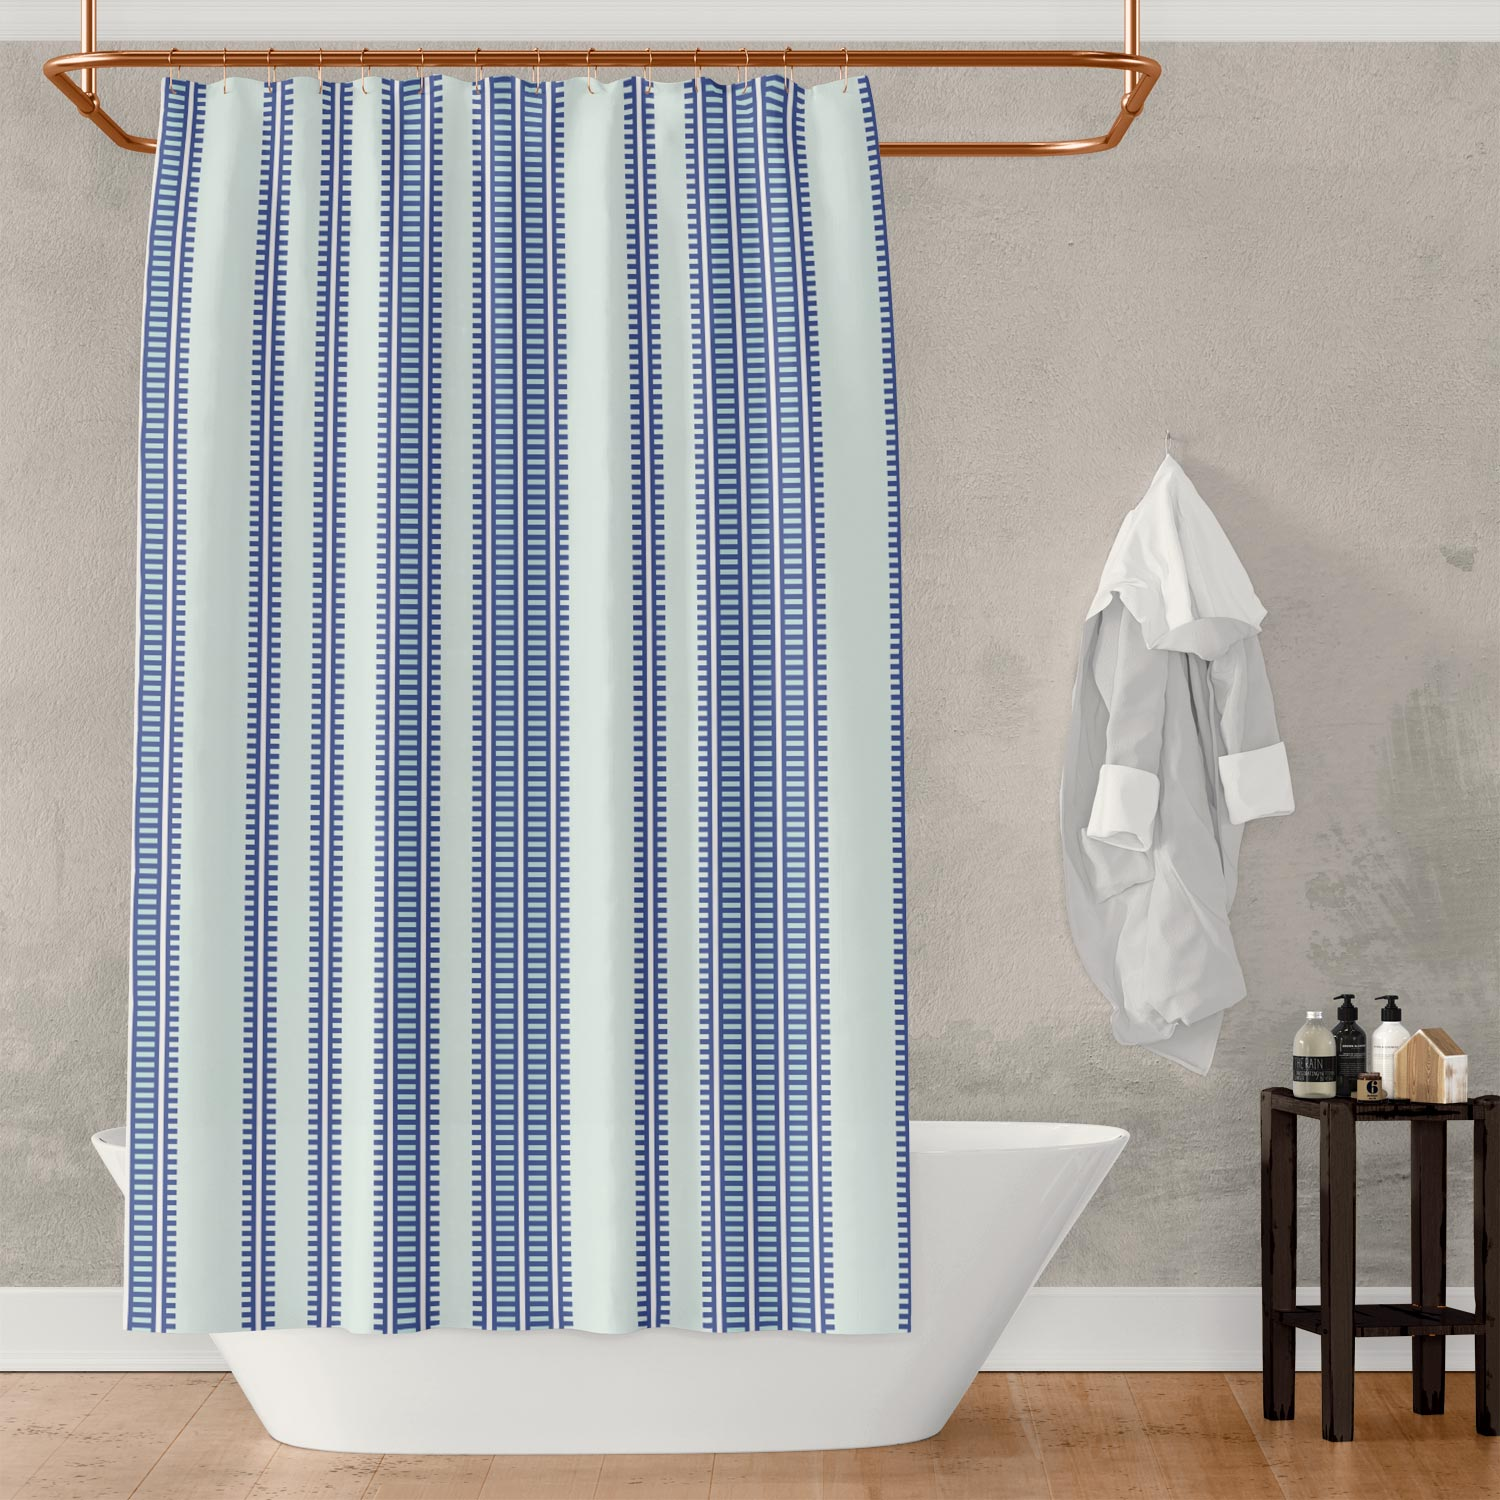 Shower Curtain in Royal Blue Vertical Stripes